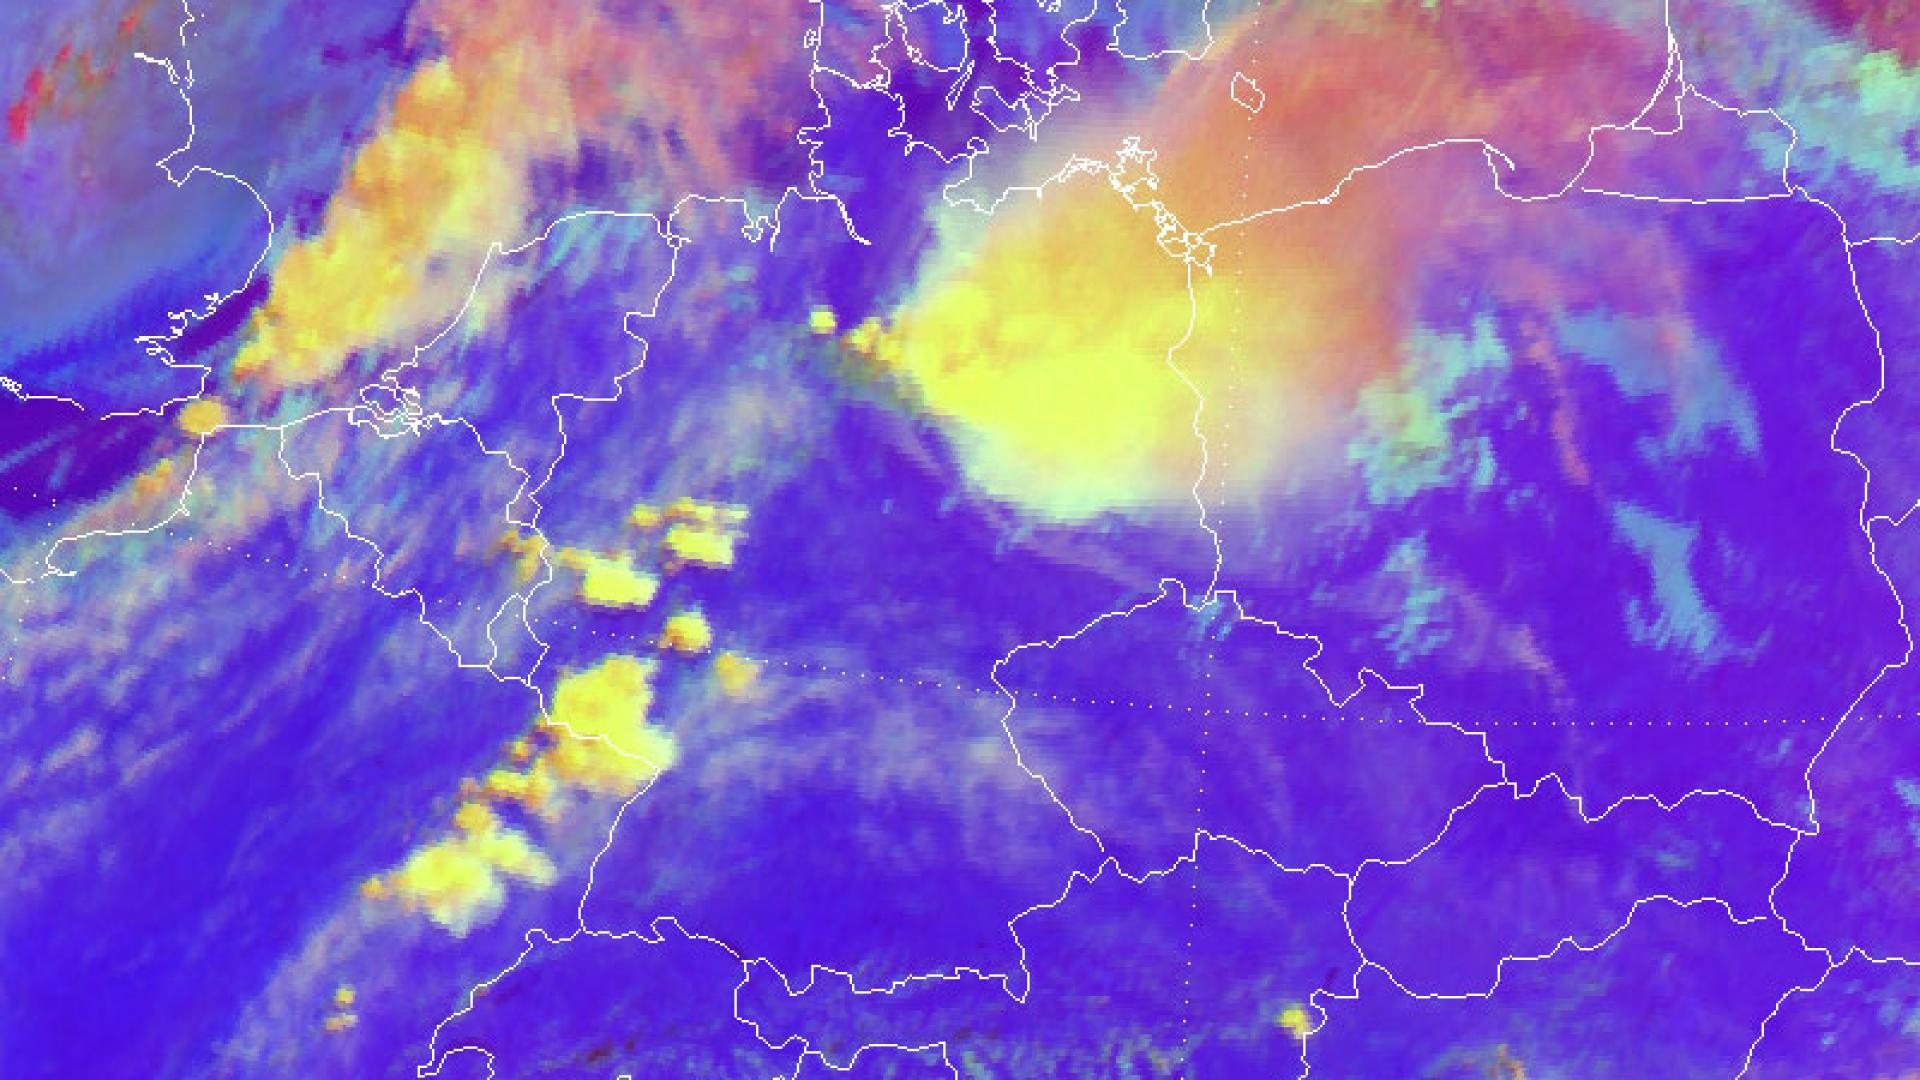 Thunderstorms over parts of Eastern Europe